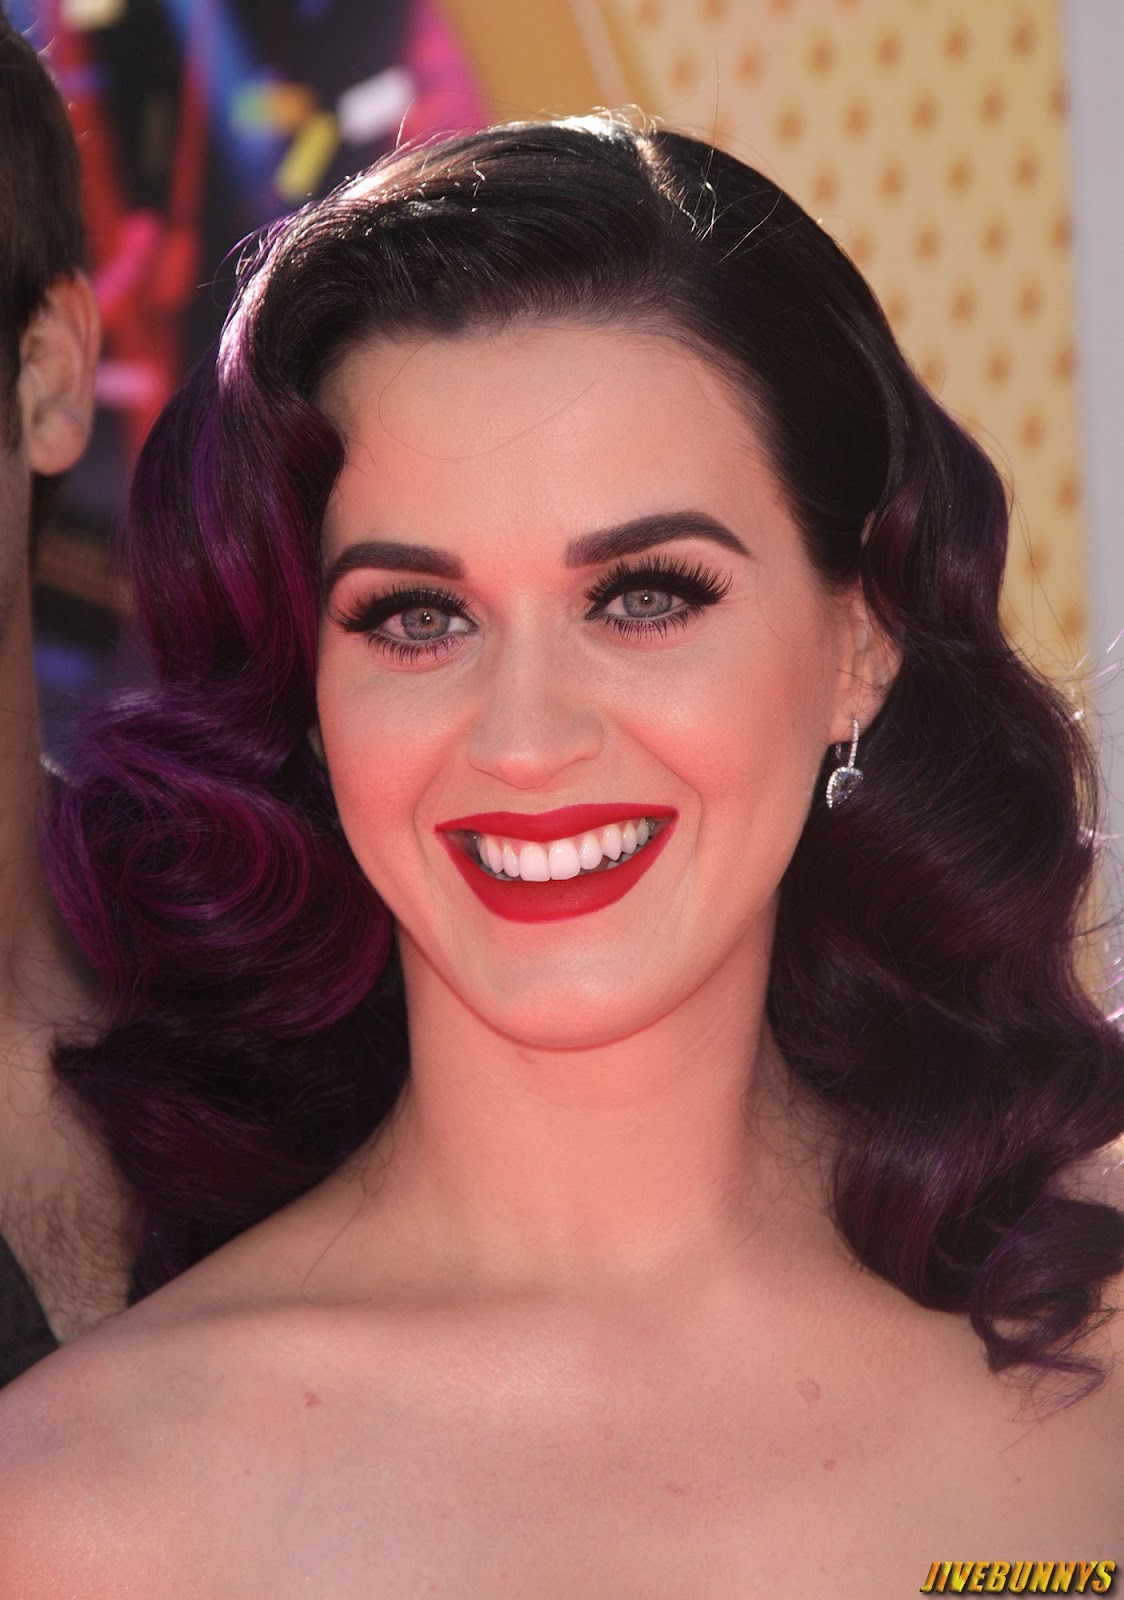 jivebunnys female celebrity picture gallery katy perry